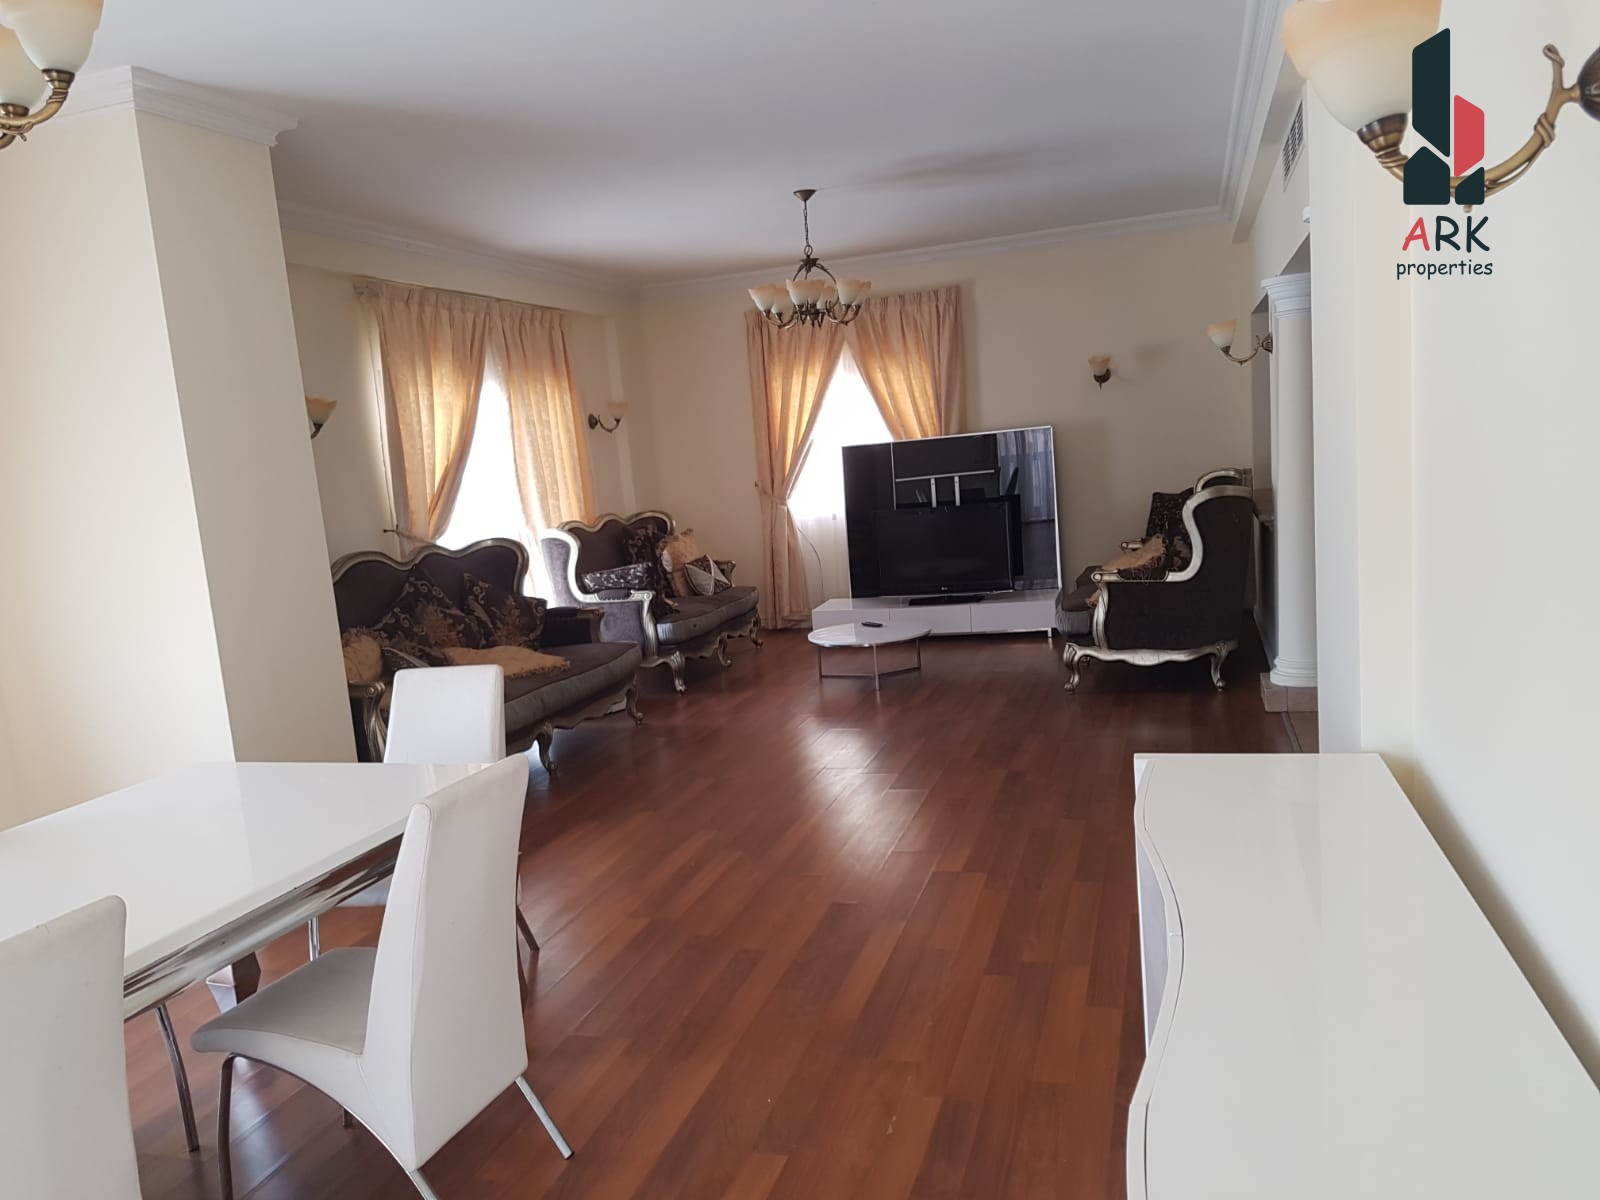 Duplex, bright and spacious with modern facilities